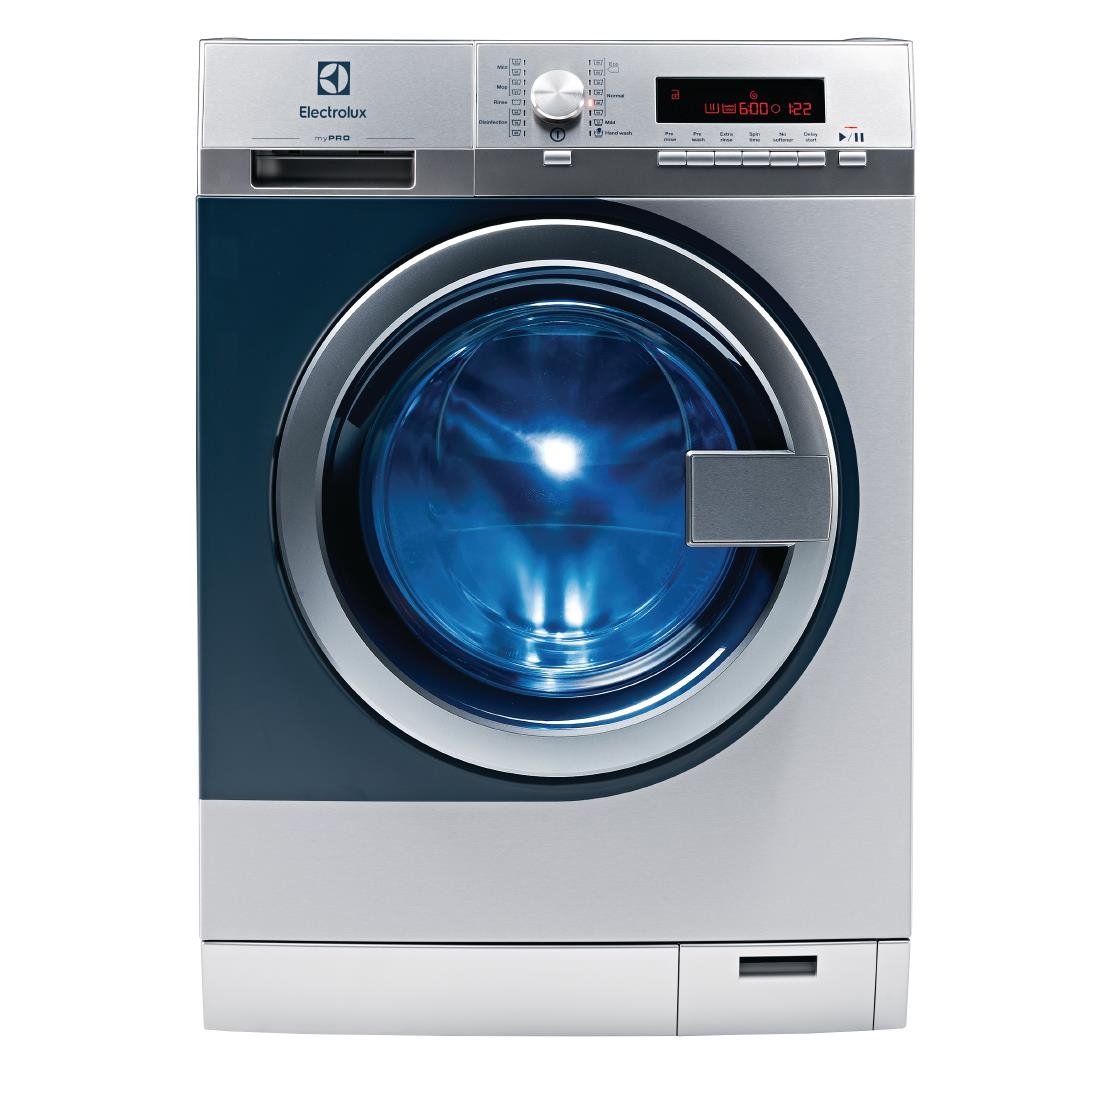 electrolux glasswasher. electrolux-mypro-washing-machine-we170v-gravity-drain-with- electrolux glasswasher